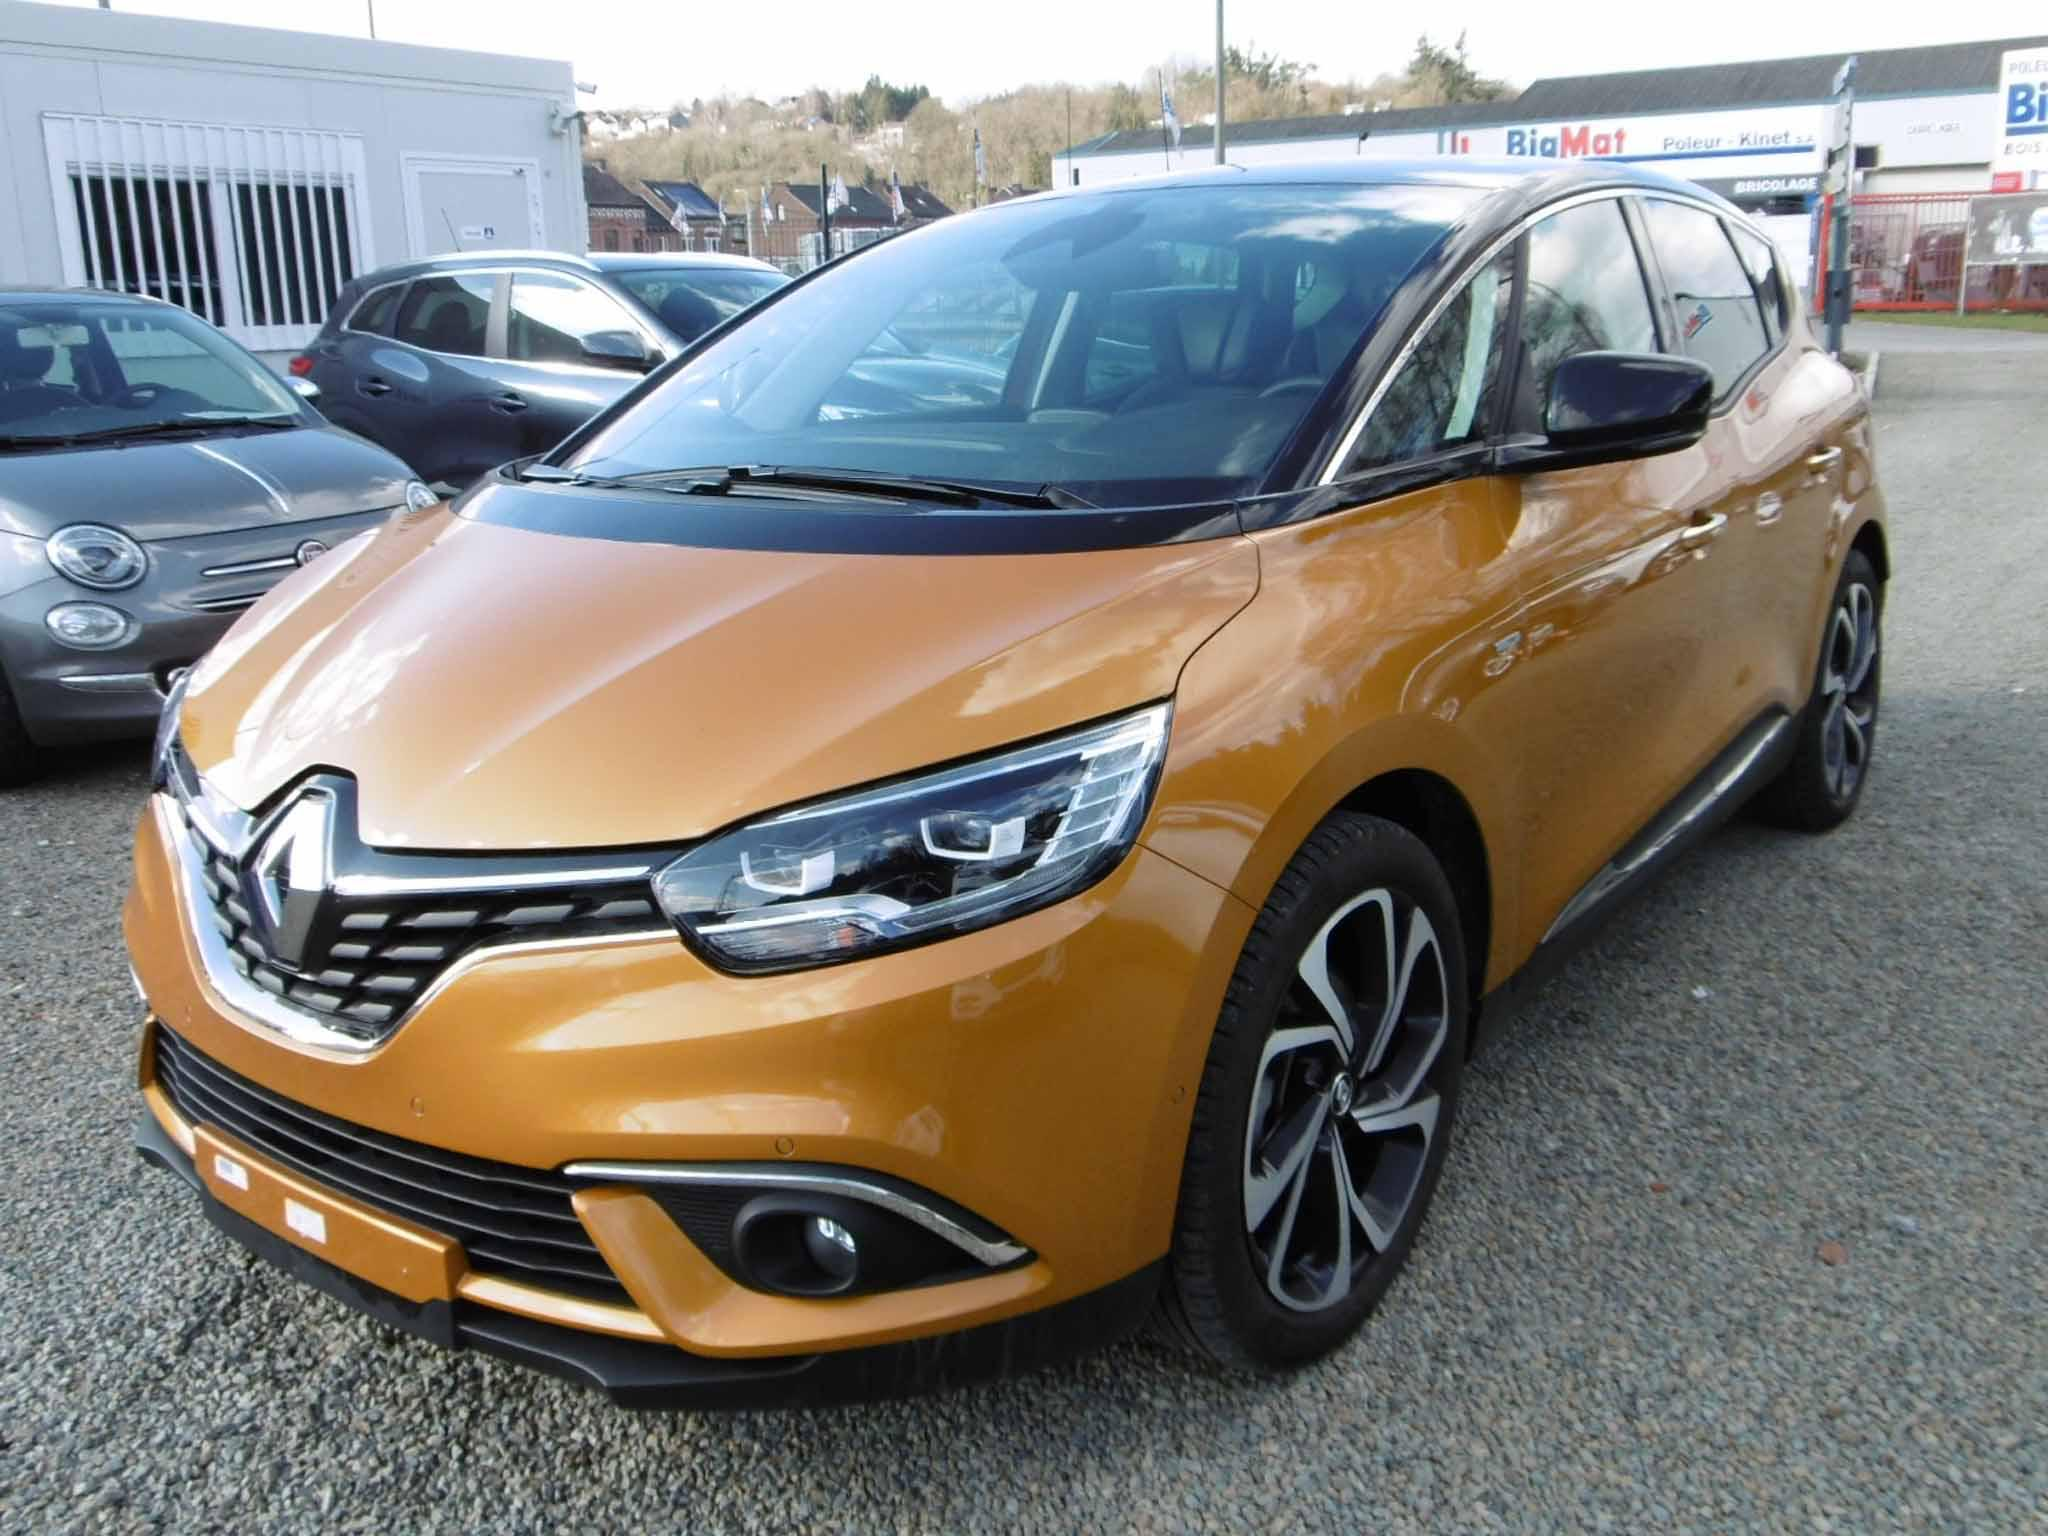 Renault Scenic IV 1 2 TCe 130 Bose Edition